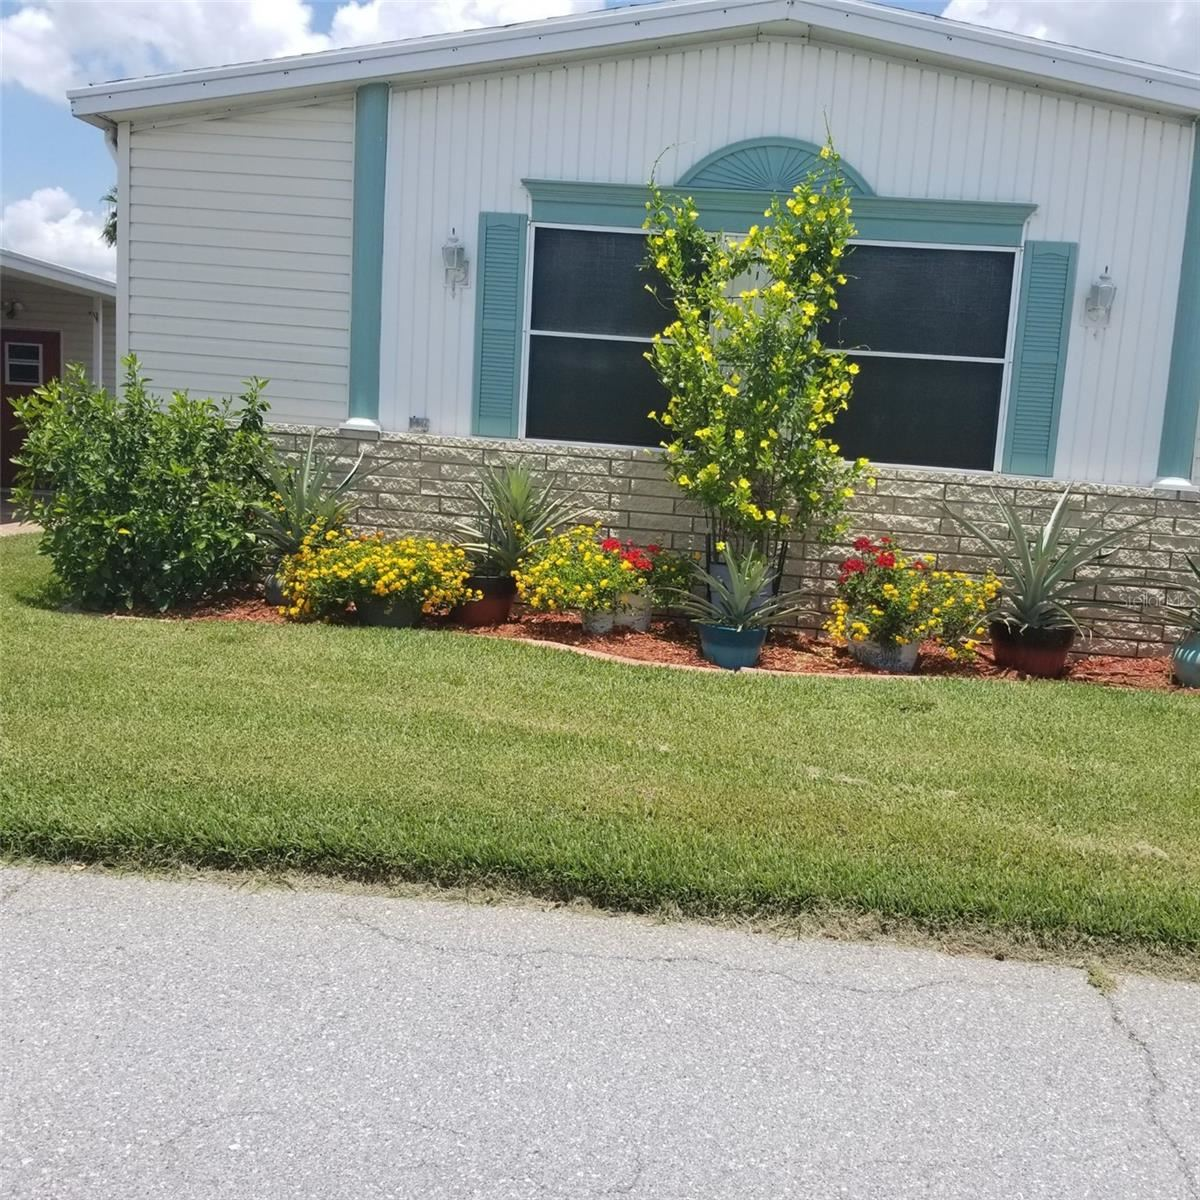 Photo of 87 STRAPHMORE DRIVE, HAINES CITY, FL 33844 (MLS # P4917595)